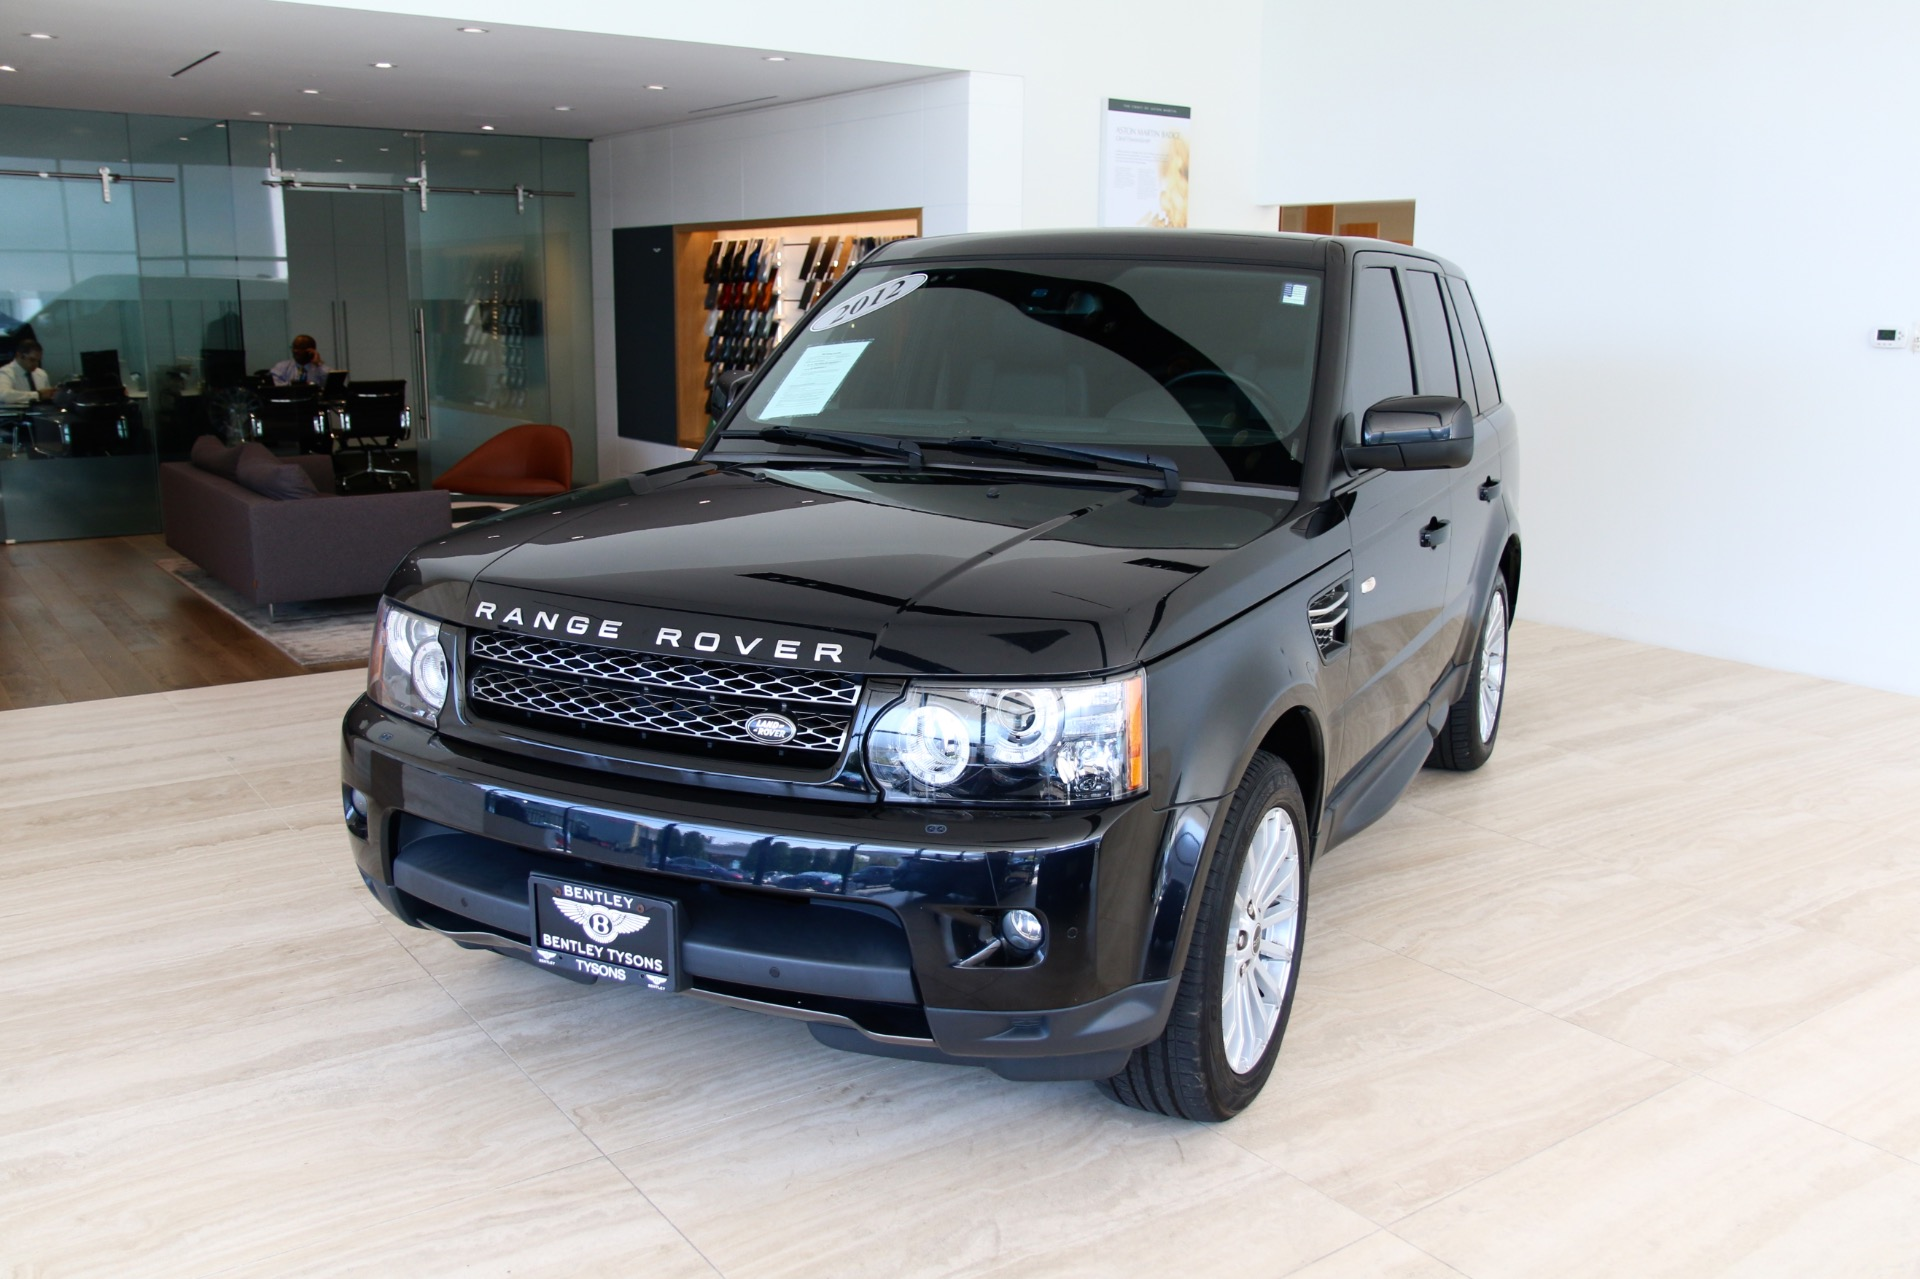 2012 land rover range rover sport hse stock 6n051495c for sale near vienna va va land rover - Land rover garage near me ...